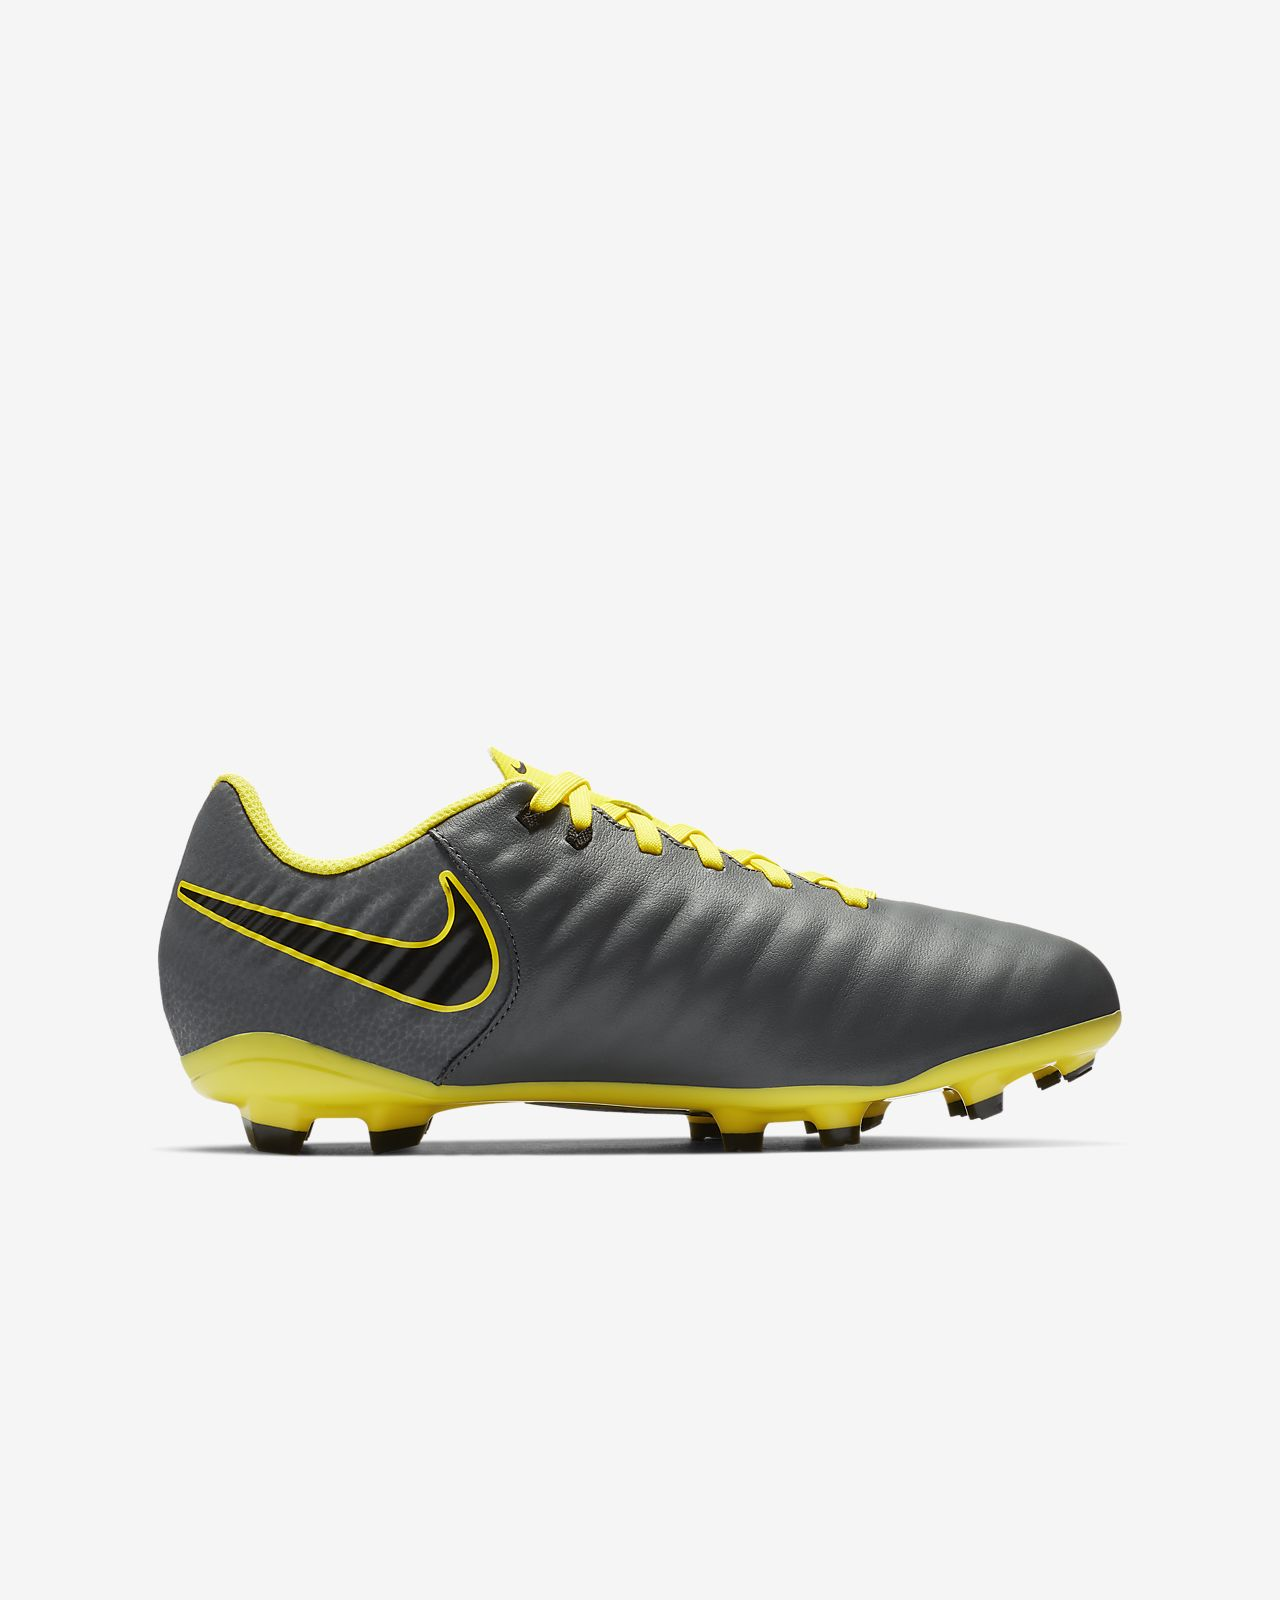 819255bf6a660 ... Nike Jr. Legend 7 Academy FG Younger/Older Kids' Firm-Ground Football